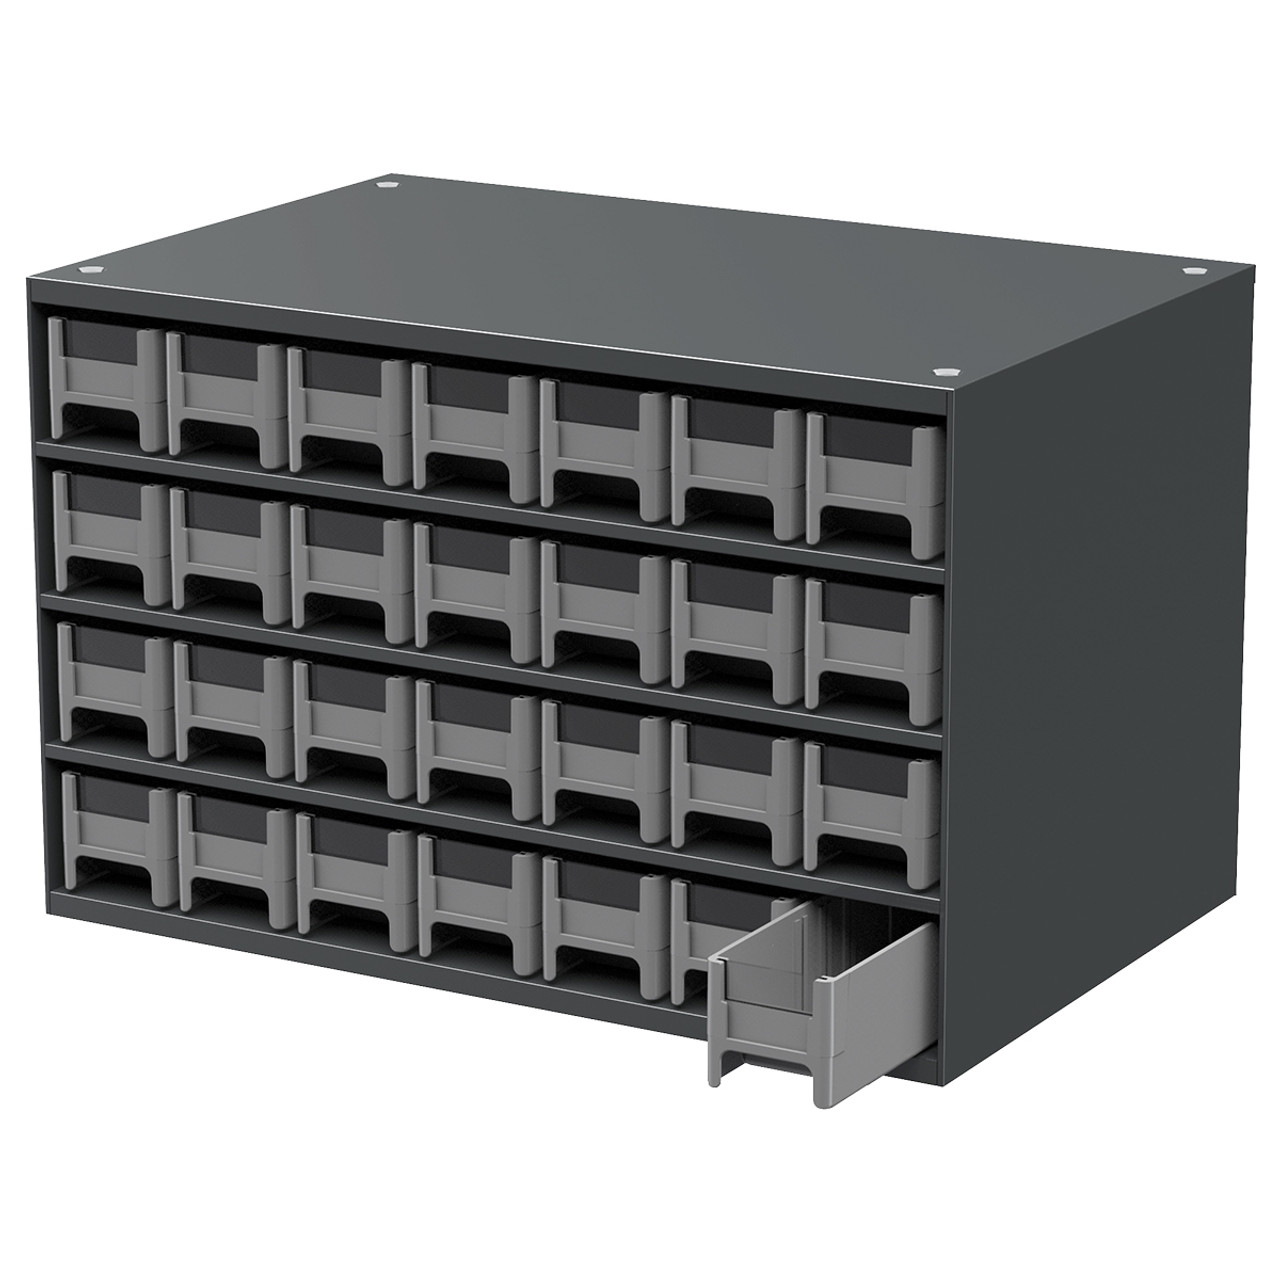 Cabinet, 19-Series Steel Cabinet 28 Drawers  19228